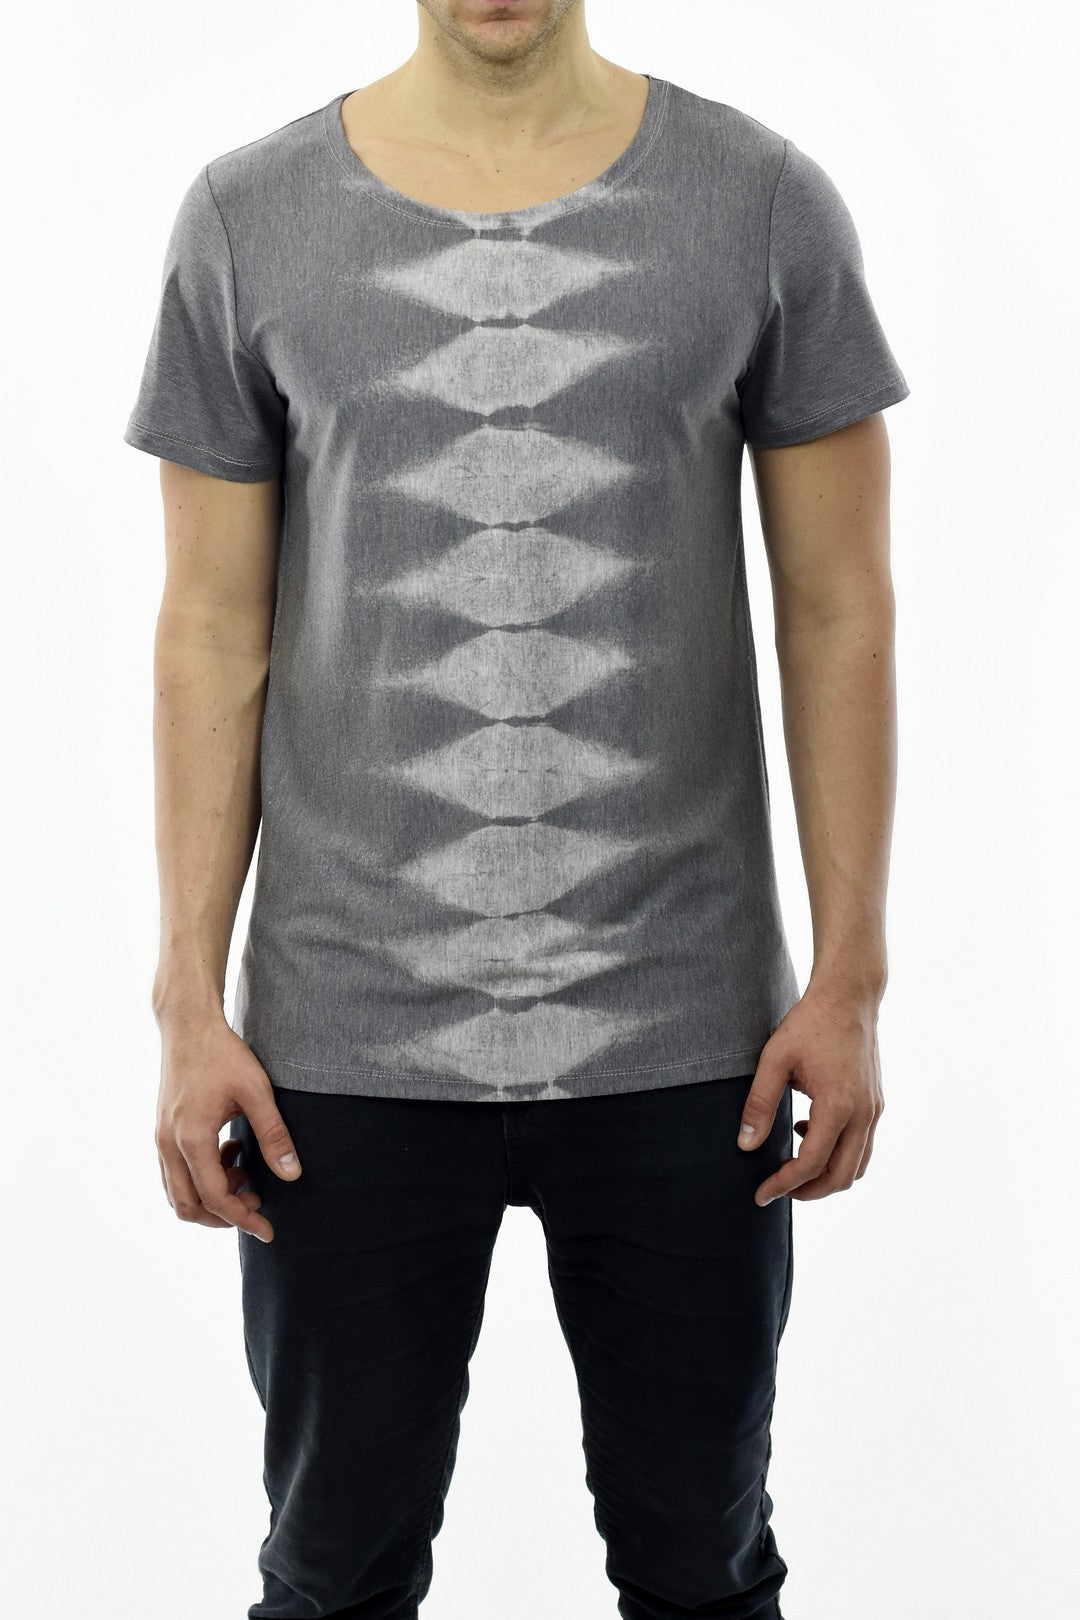 Mens Summer T-shirt Print T in Grey Marl with Spine Motif ZG5230